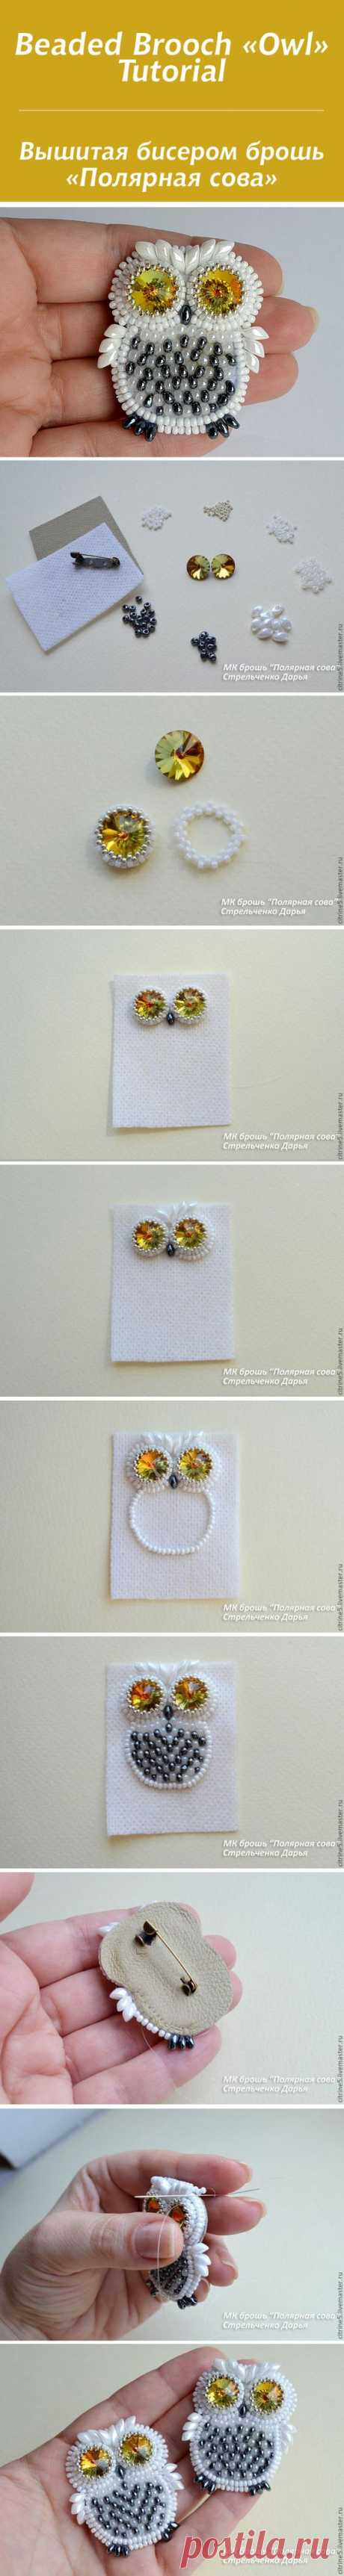 """(1) """"Полярная сова&quot brooch embroidered with beads; \/ Beaded Brooch """"Owl"""" Tutorial #bead #tutorial 